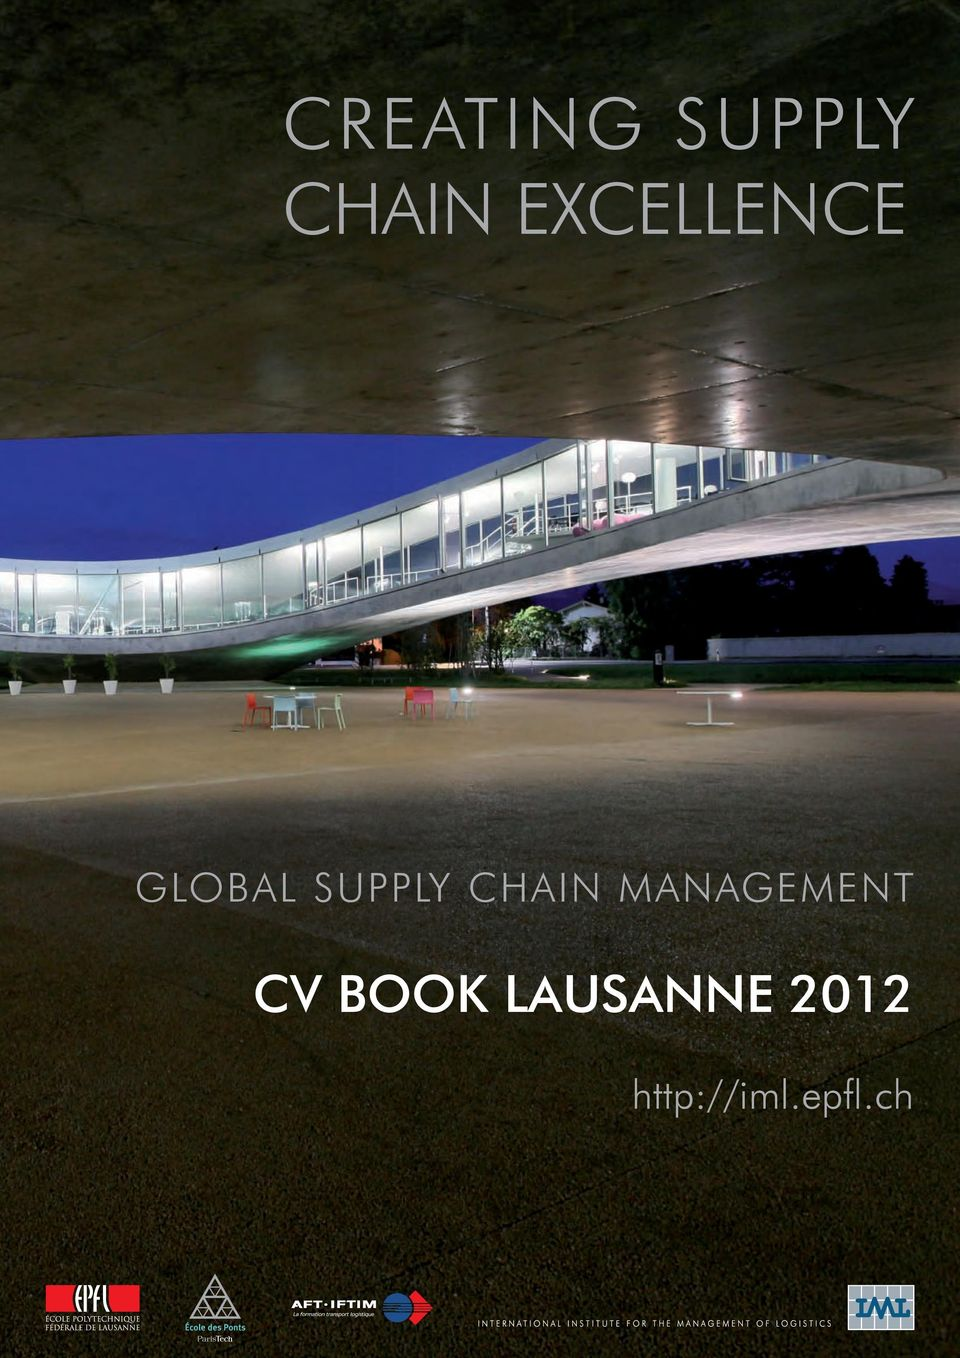 CHAIN MANAGEMENT CV BOOK